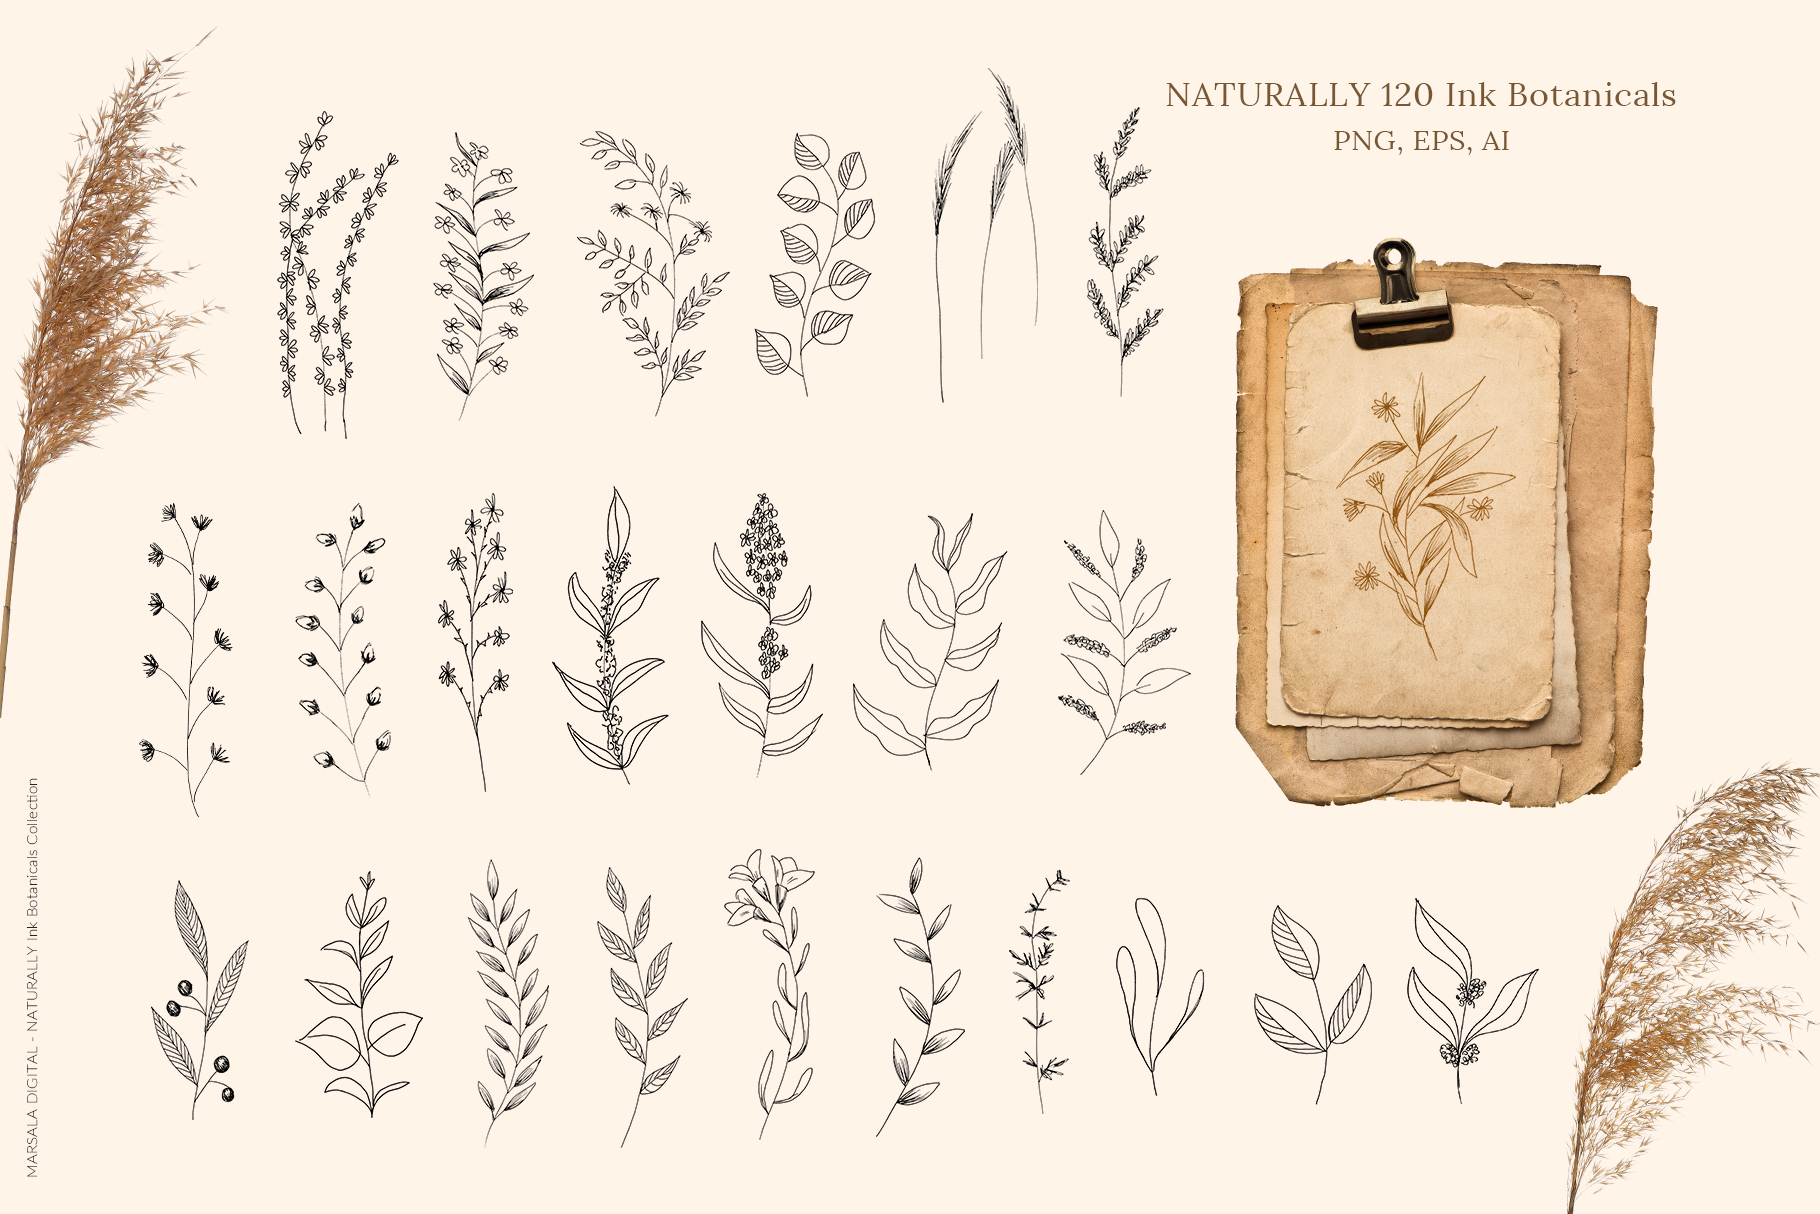 Ink Botanicals Vintage Wildflowers Ink Botanicals Vintage example image 4